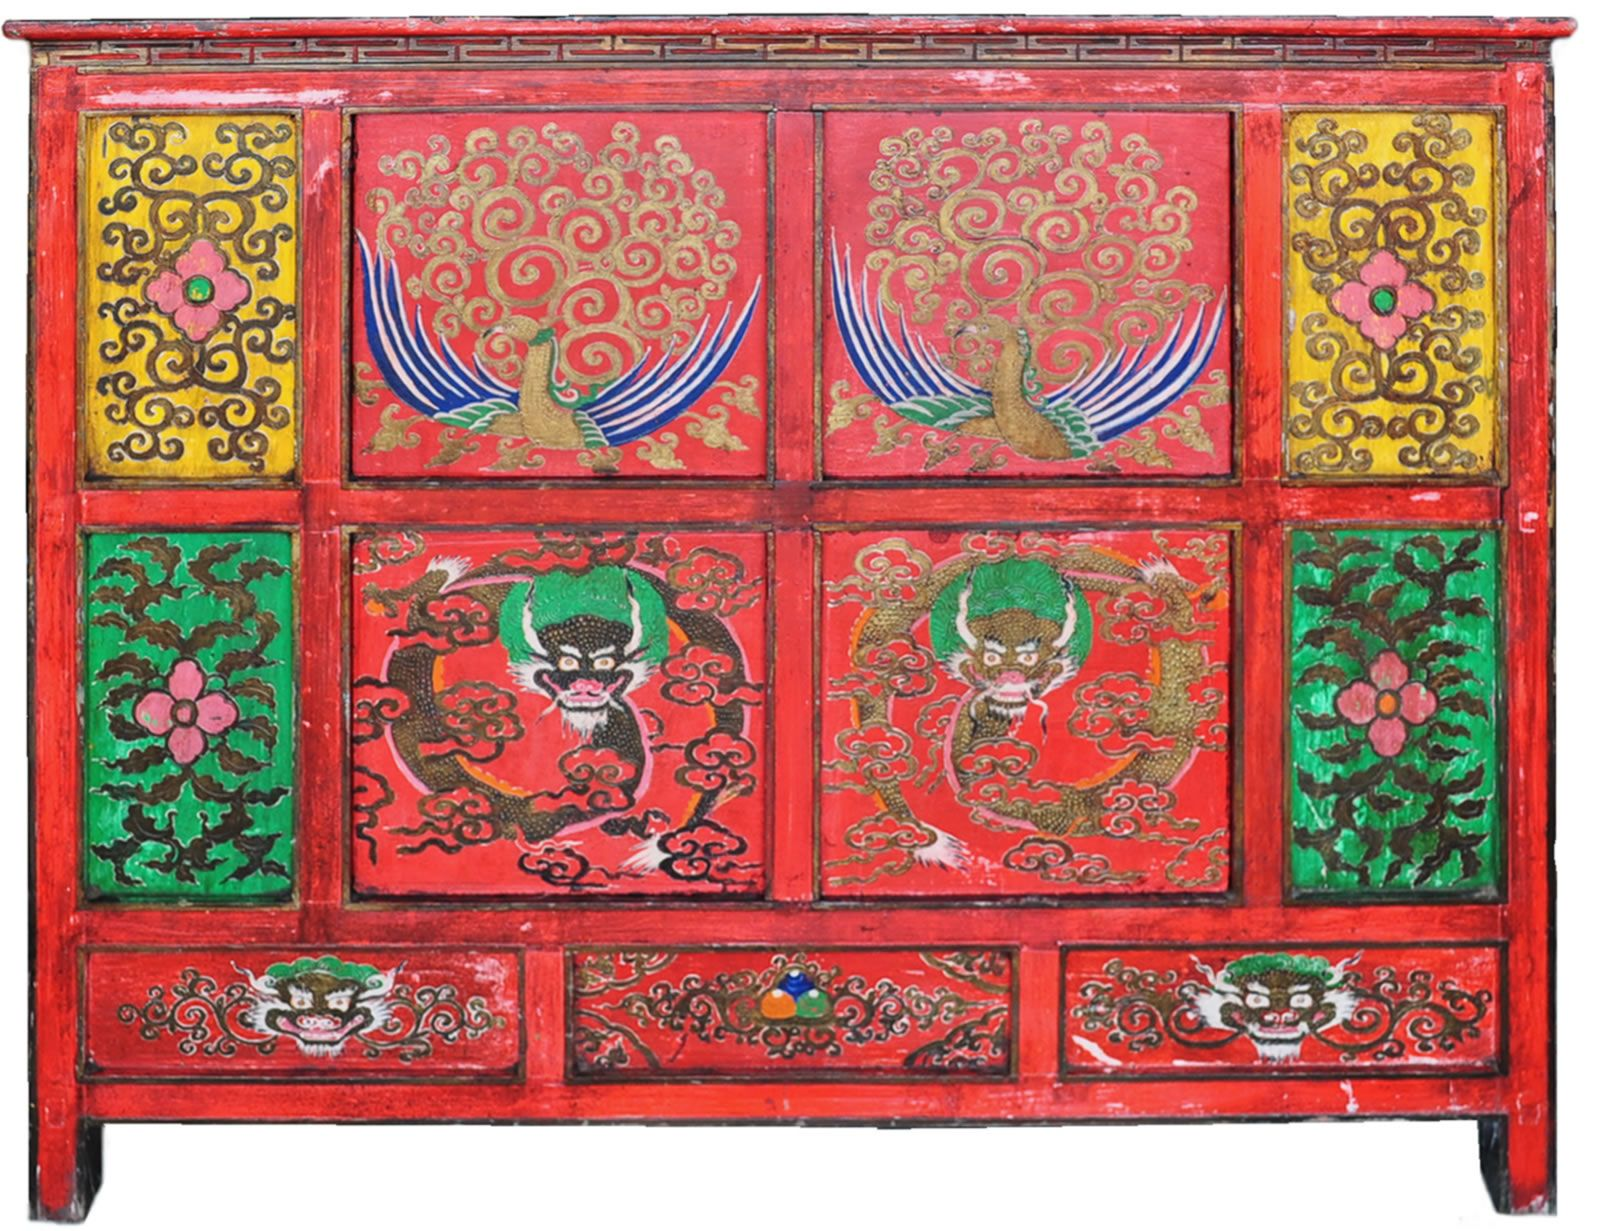 hand painted tibetan cabinet buddhist furniture lamas drum accent table offering altar chair dining metal end tables target resin wicker clearance glass decor barn wood wrought